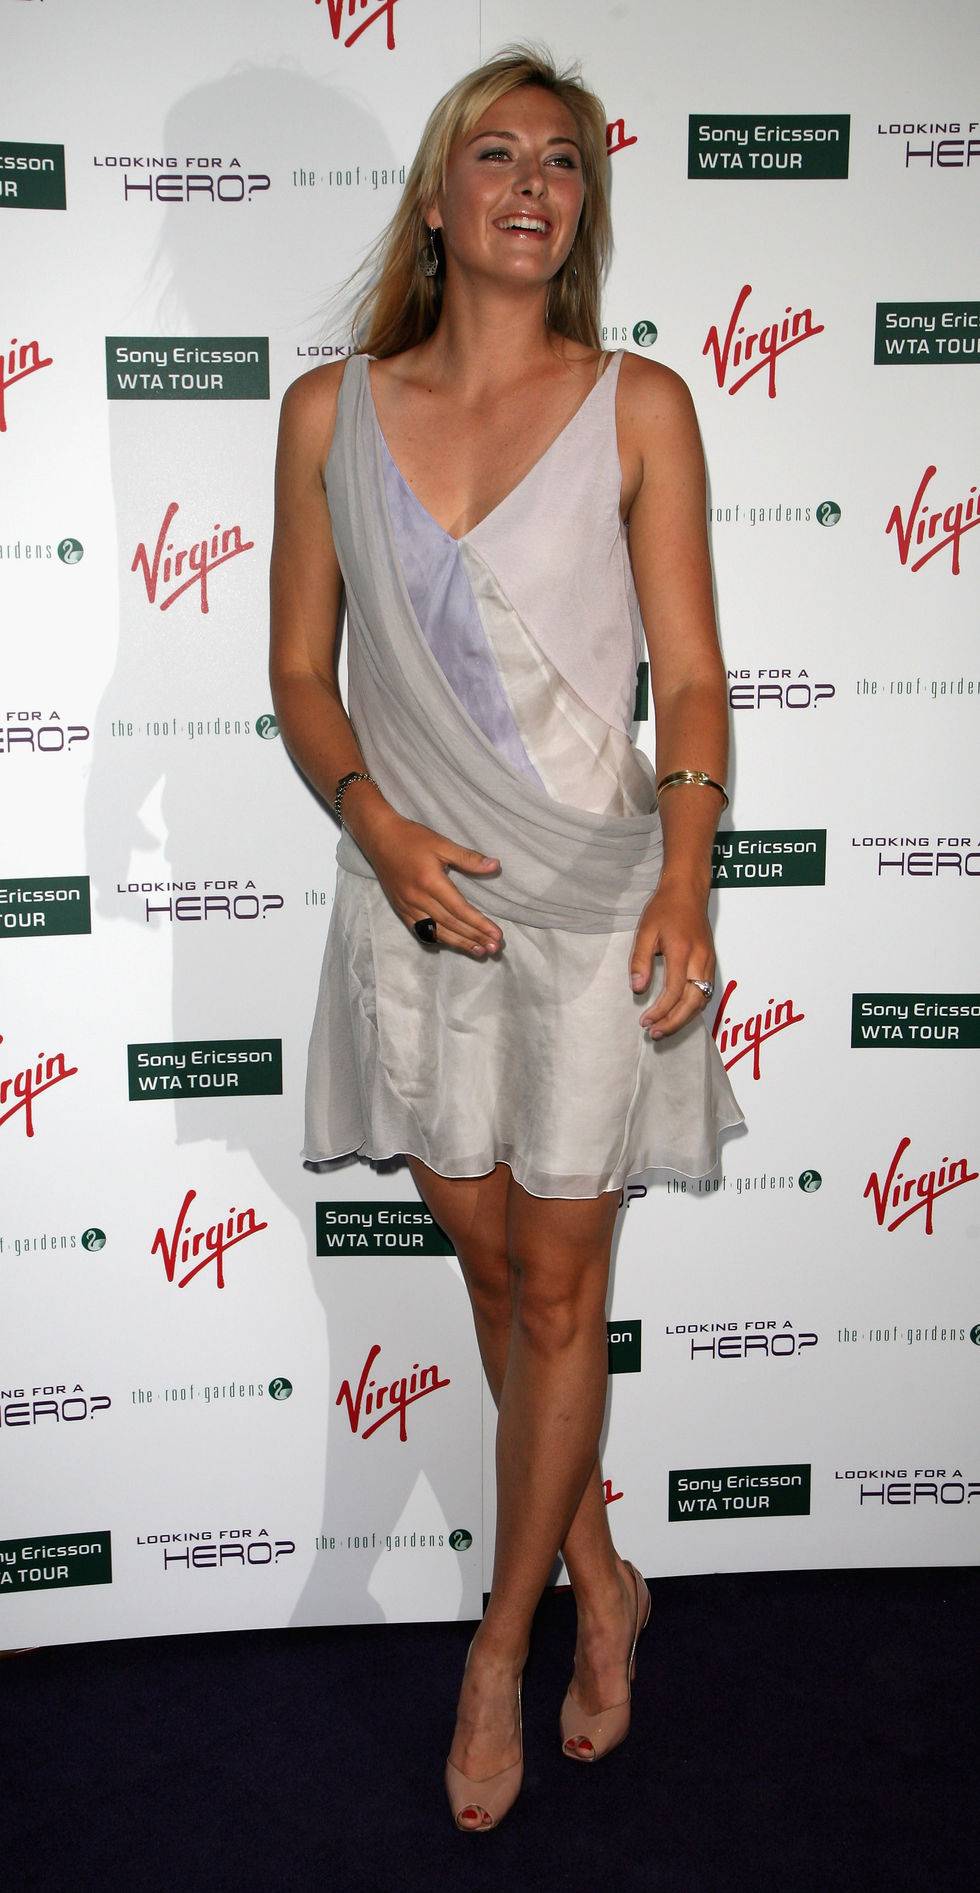 maria-sharapova-sony-ericsson-wta-tour-pre-wimbledon-player-party-01